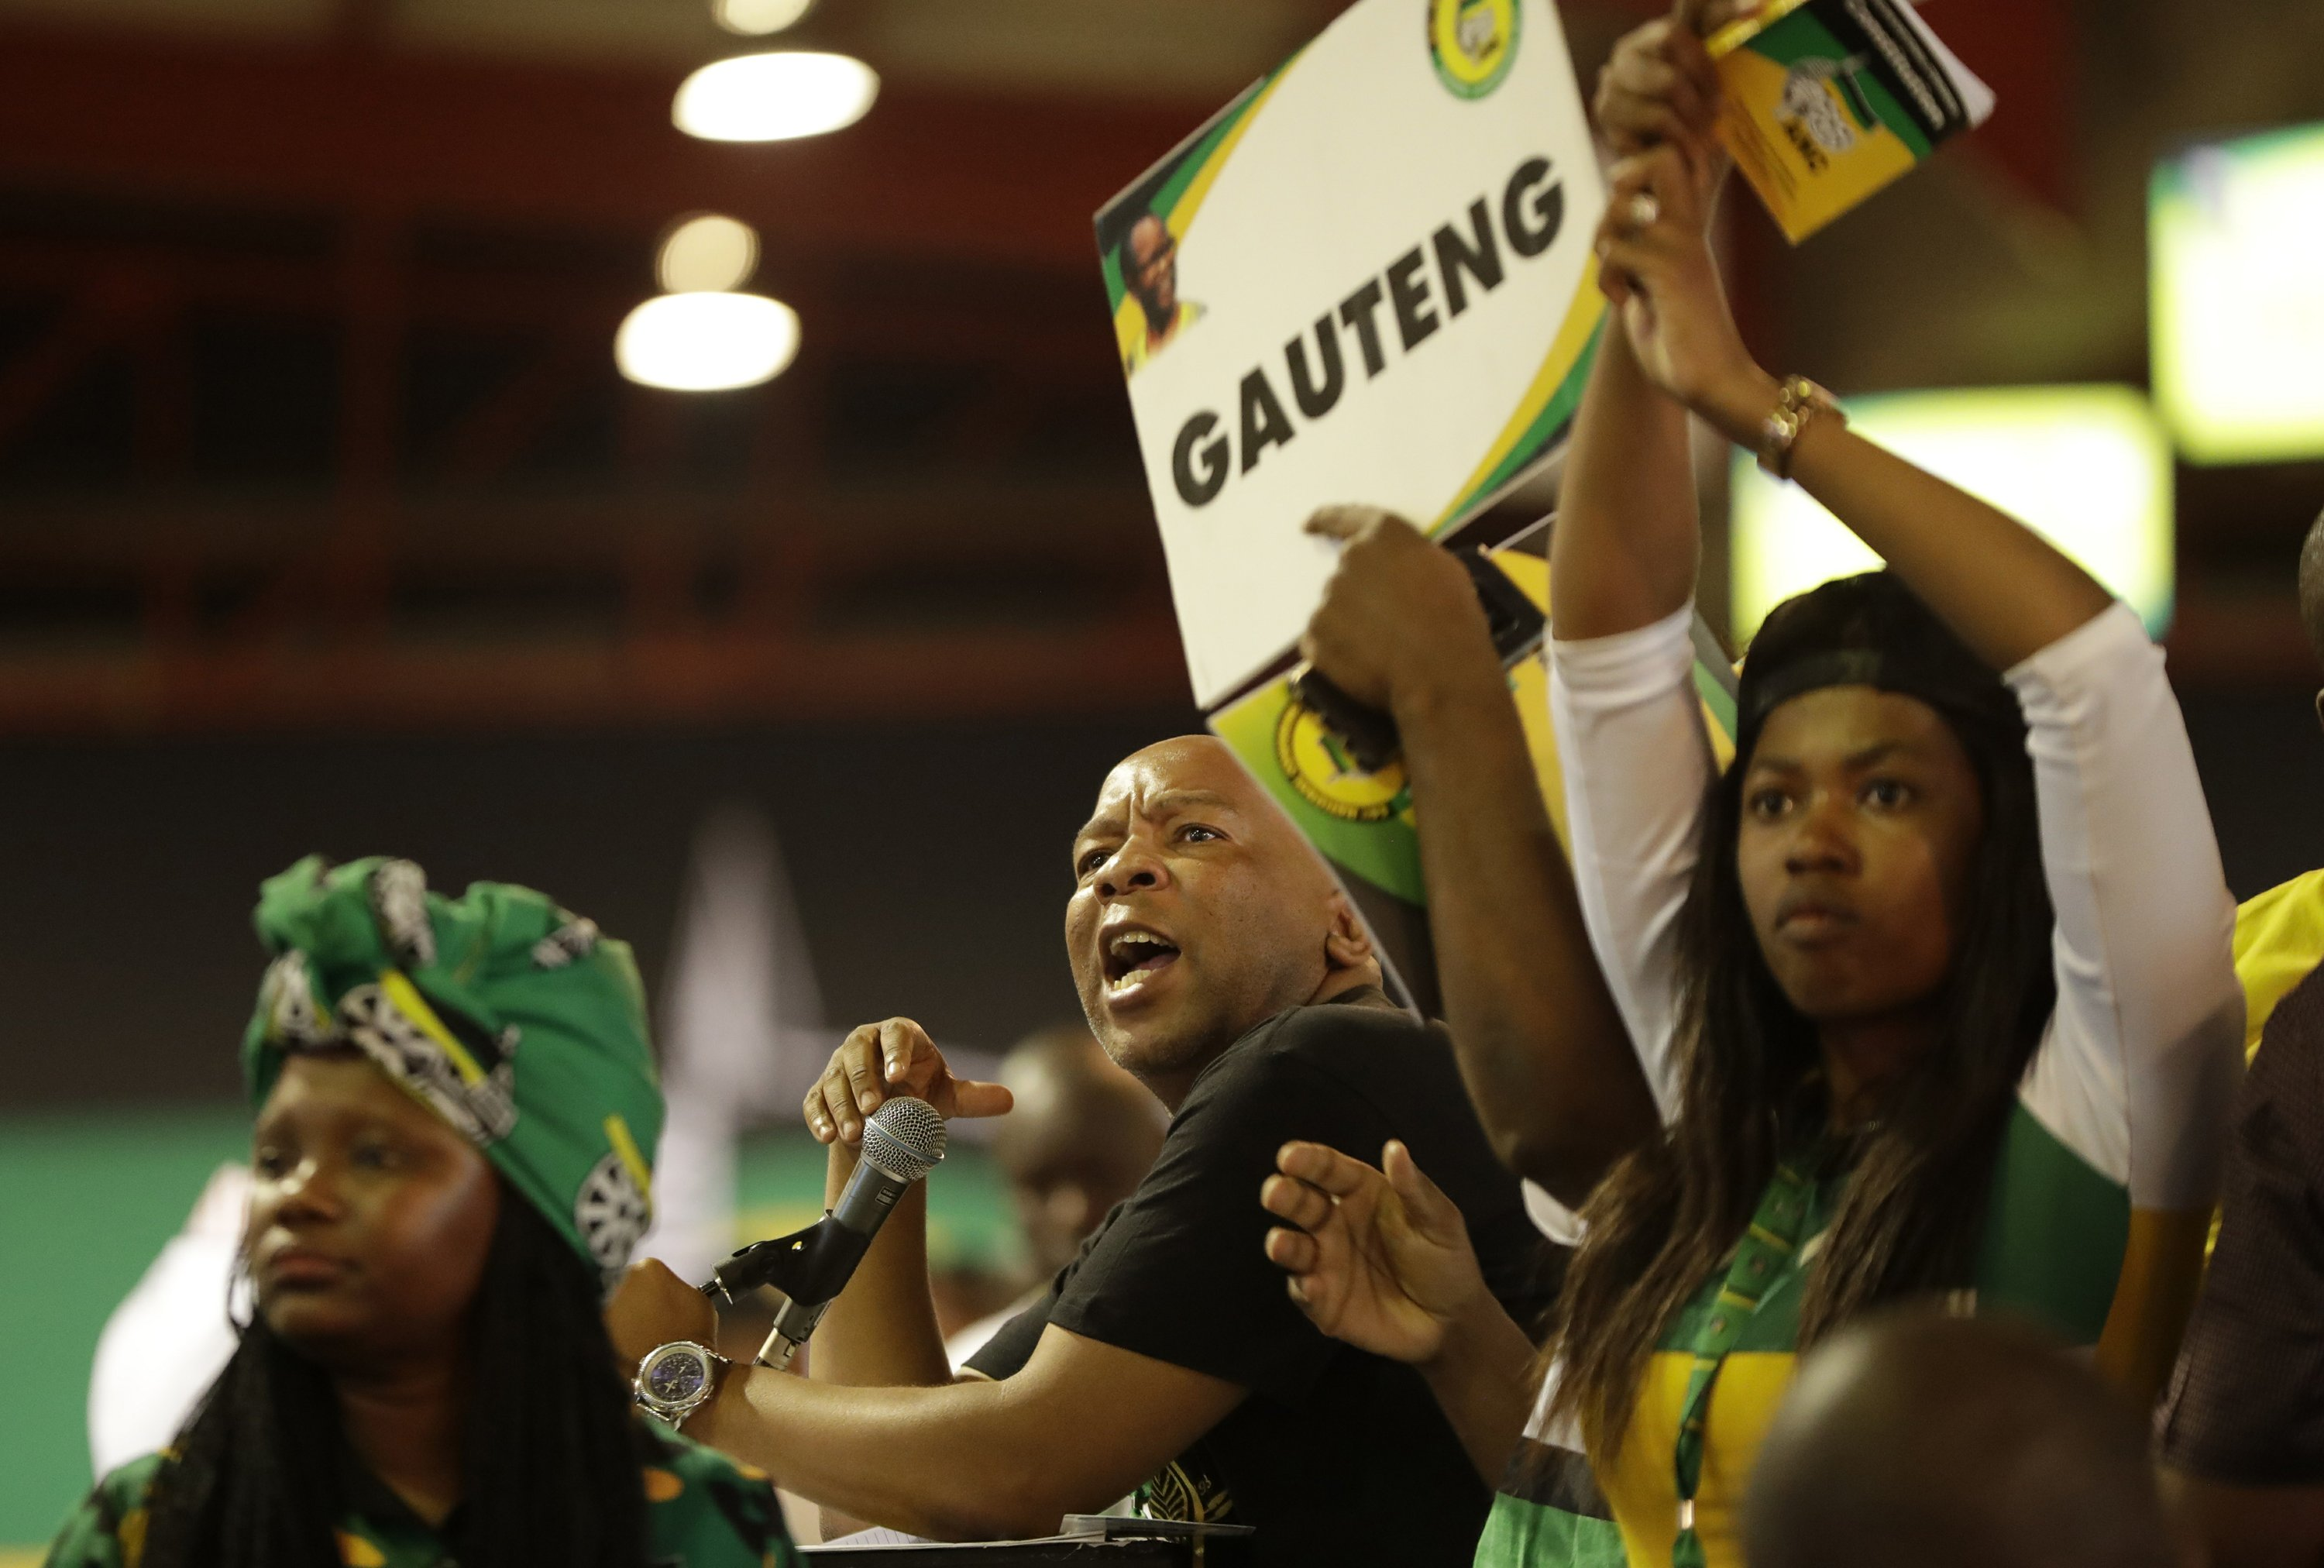 South Africa's ruling ANC party votes for new leader Monday